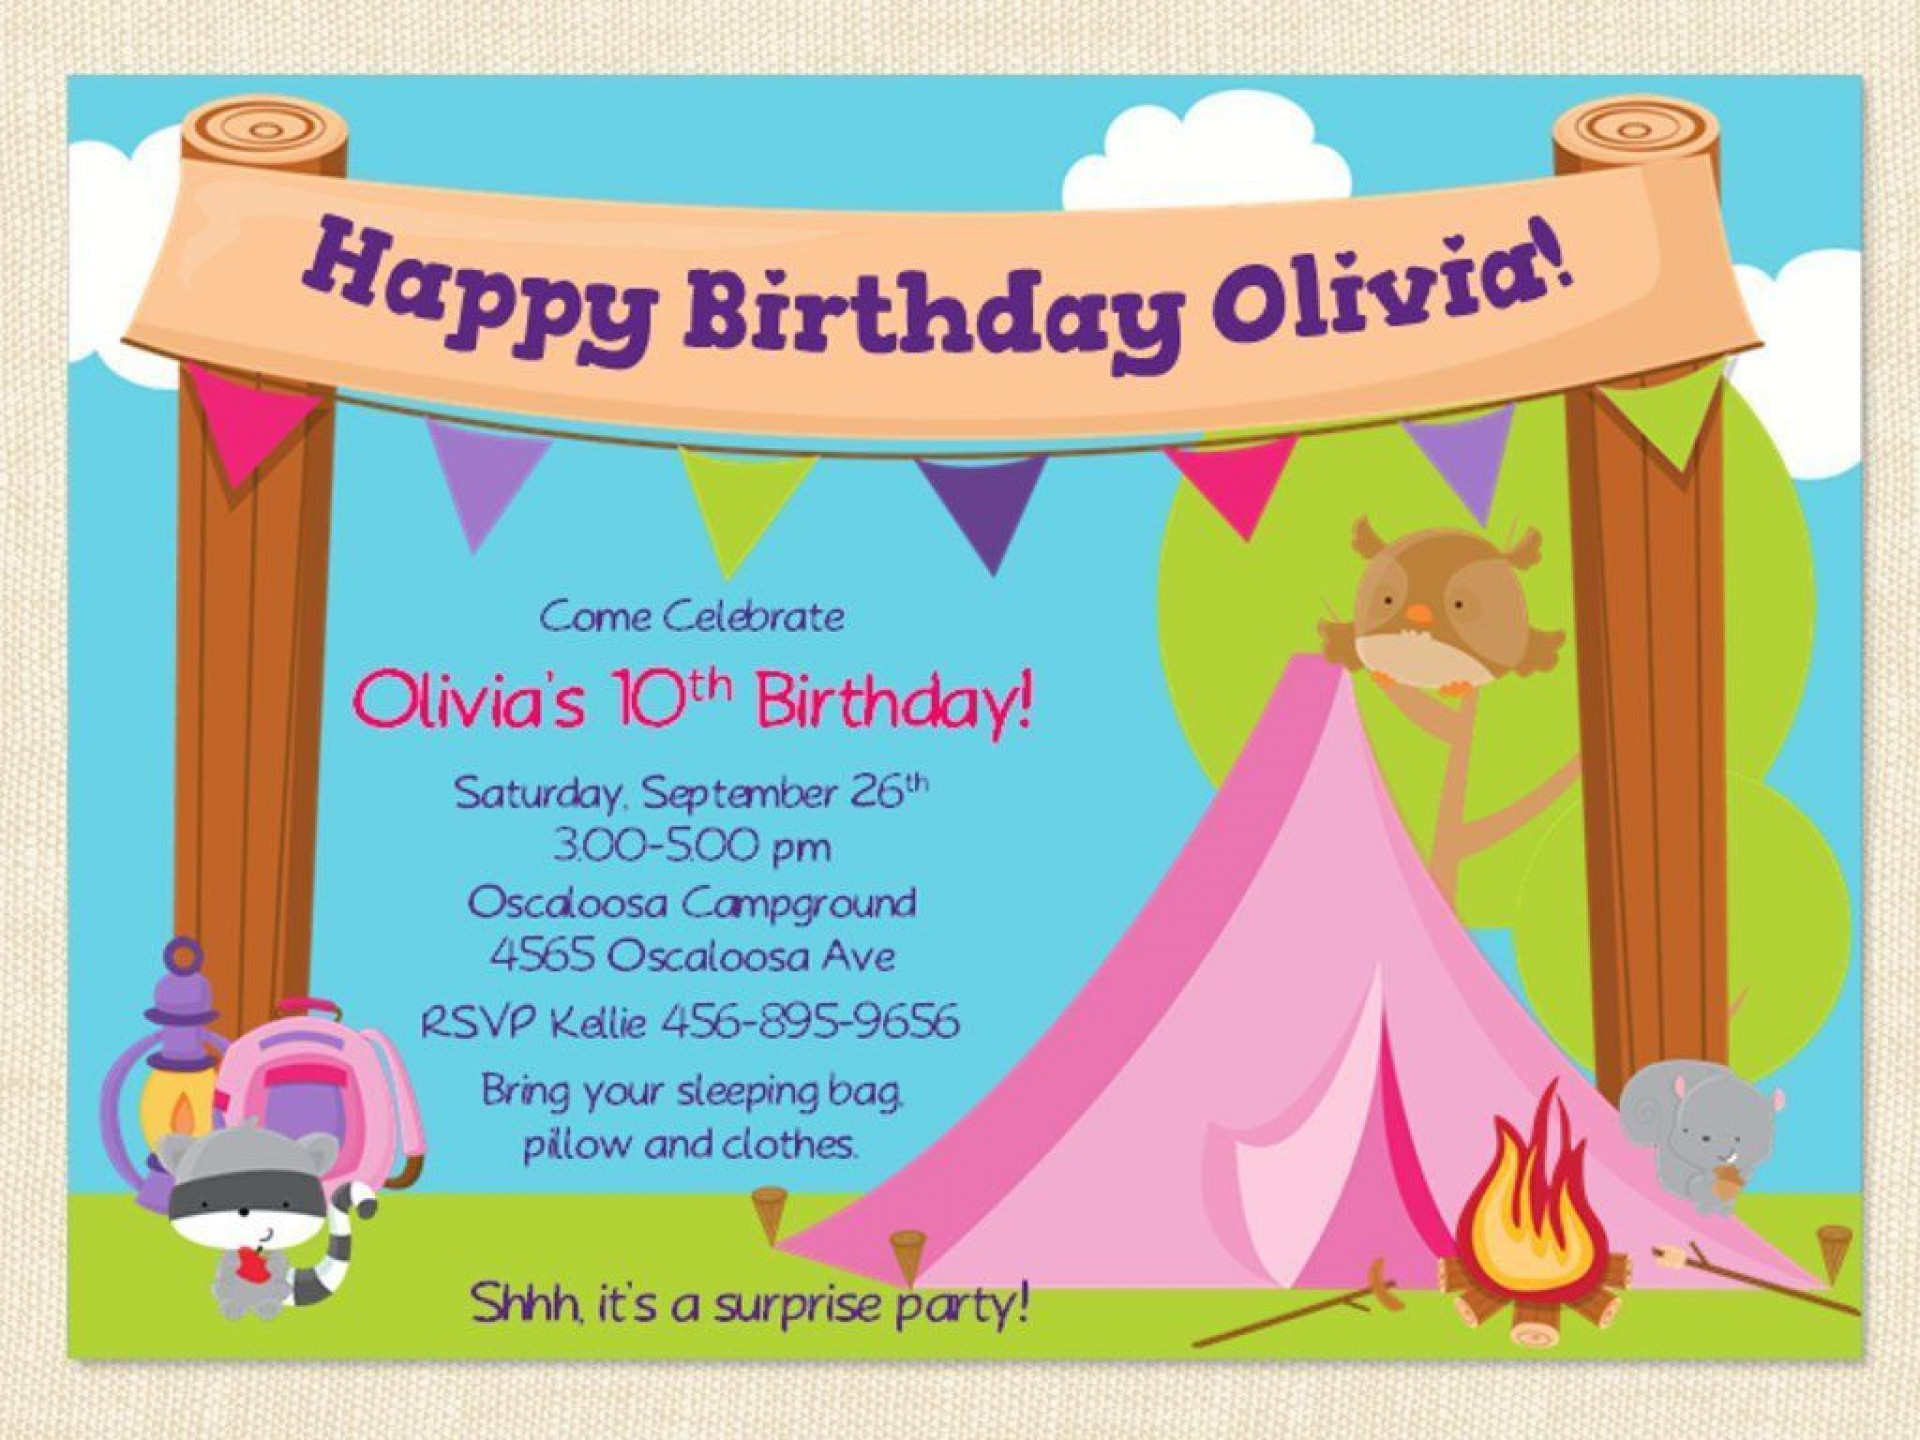 000 Unusual Camping Invitation Template Free High Resolution  Party Birthday1920